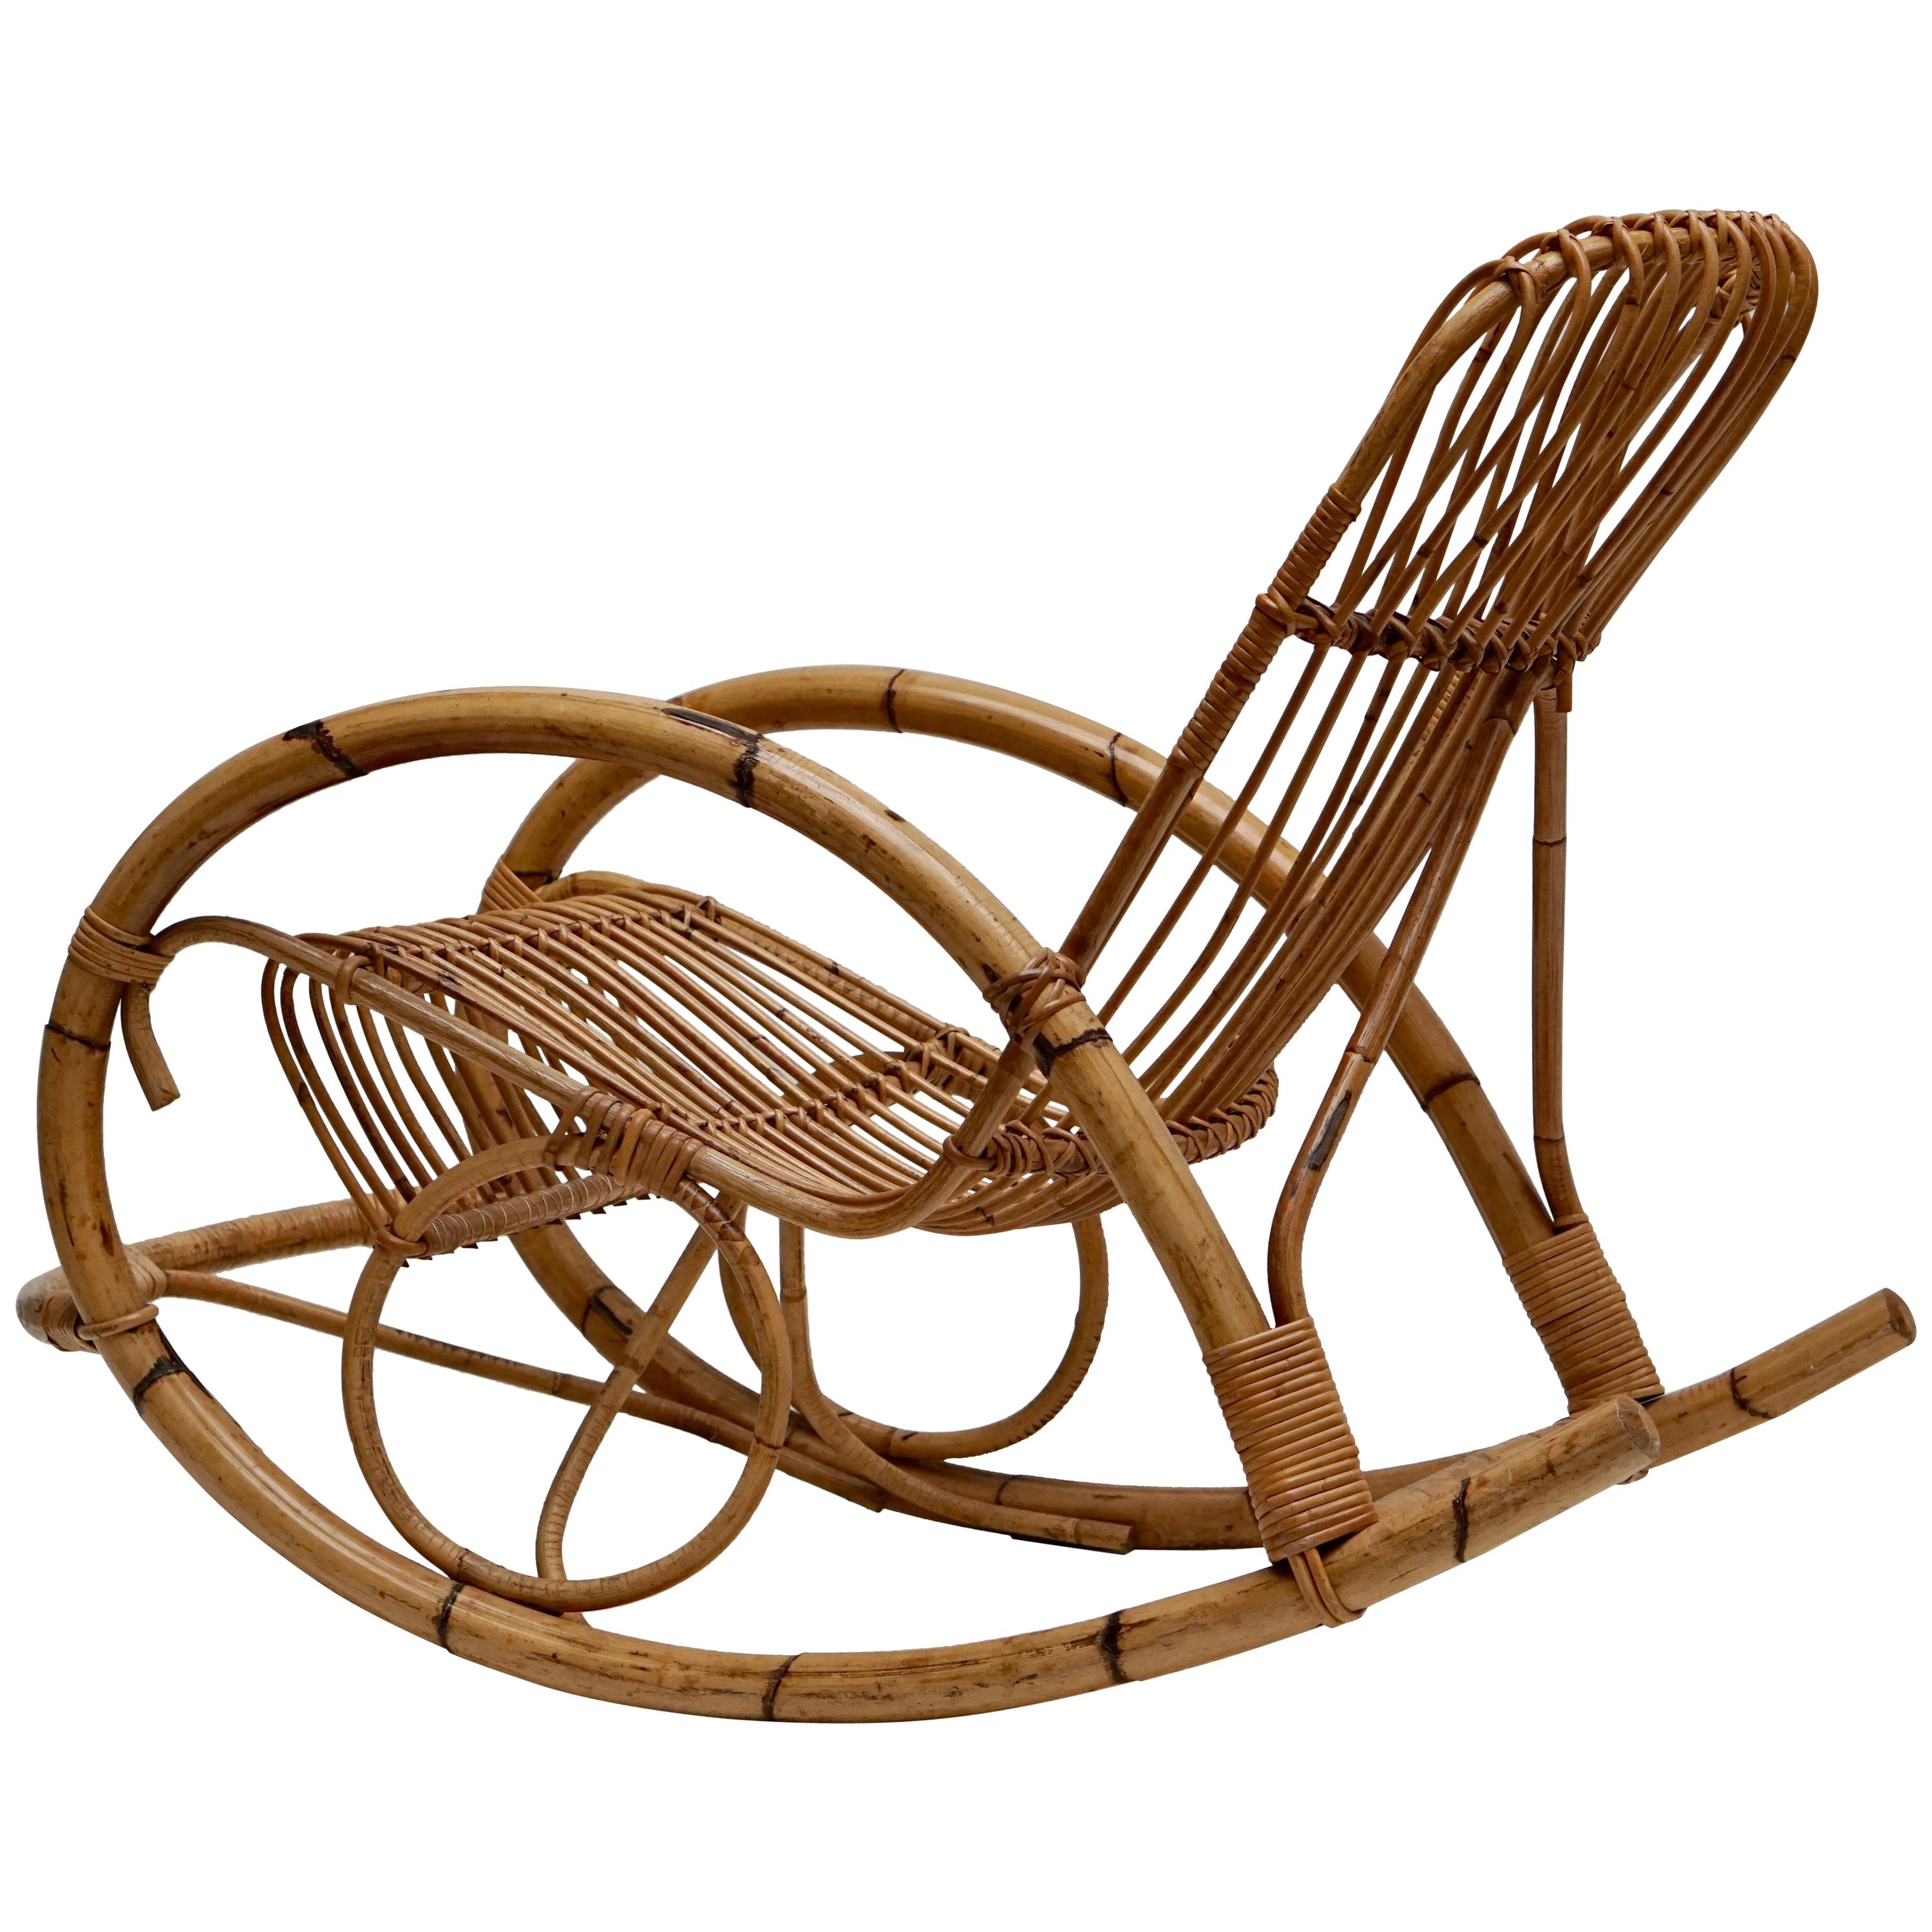 Wicker Rocking Chair Franco Albini Style Wicker Bamboo Rocking Chair